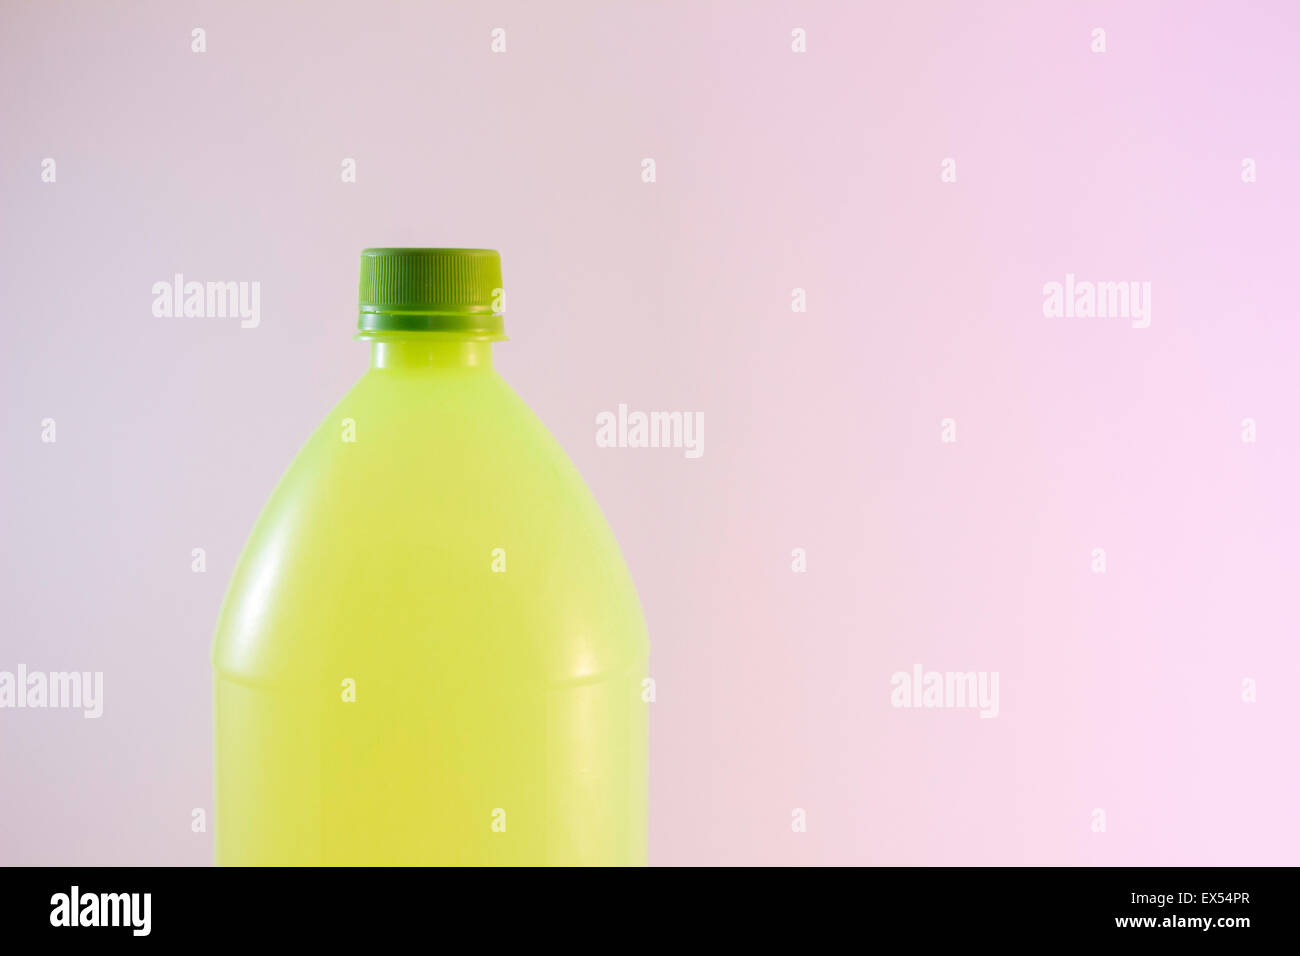 plastic bottle waste container transparent recycle - Stock Image